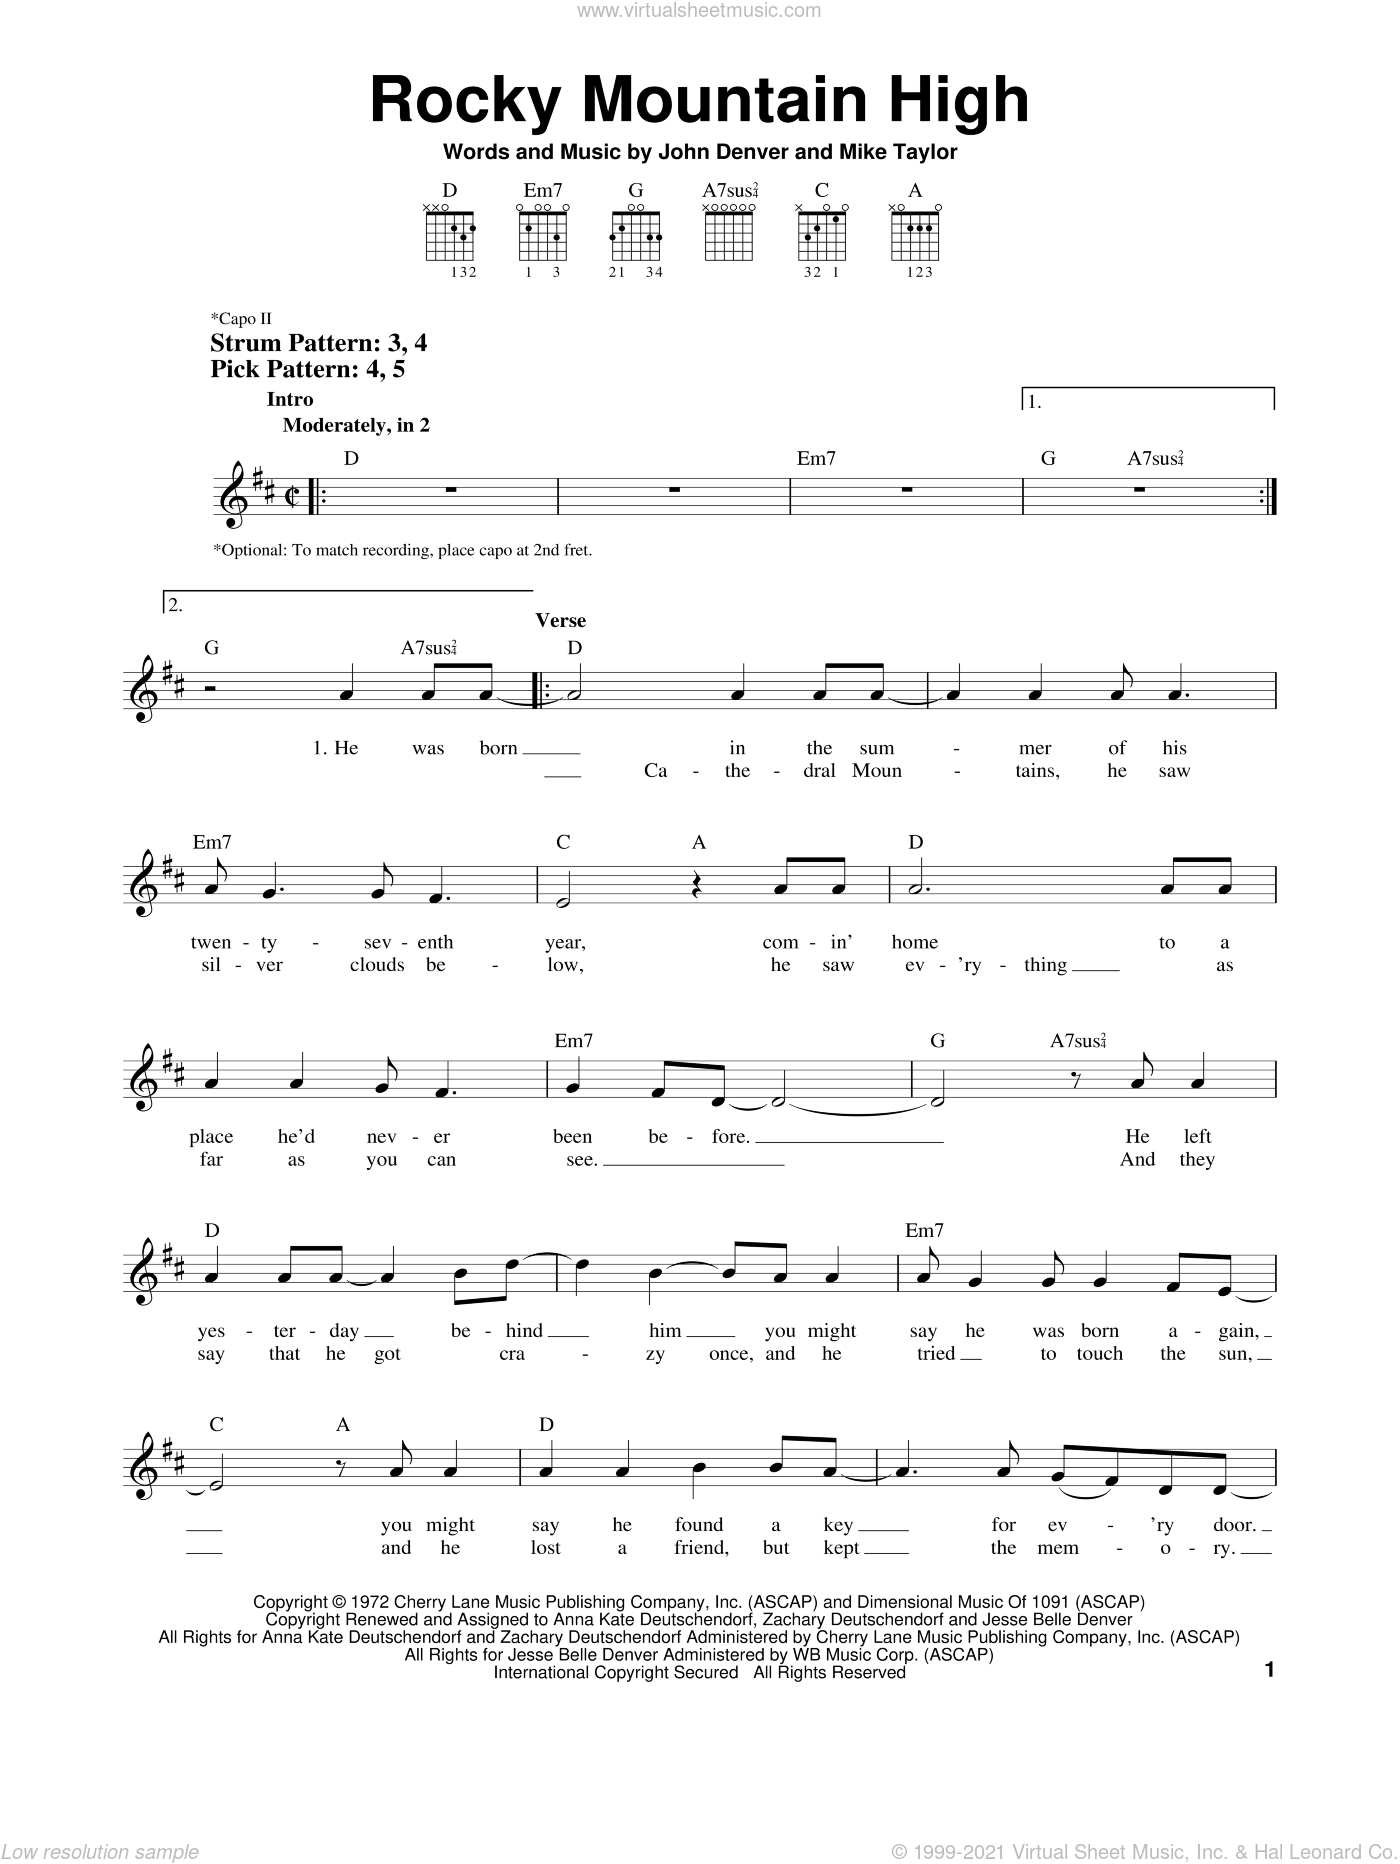 Rocky Mountain High sheet music for guitar solo (chords) by Mike Taylor and John Denver